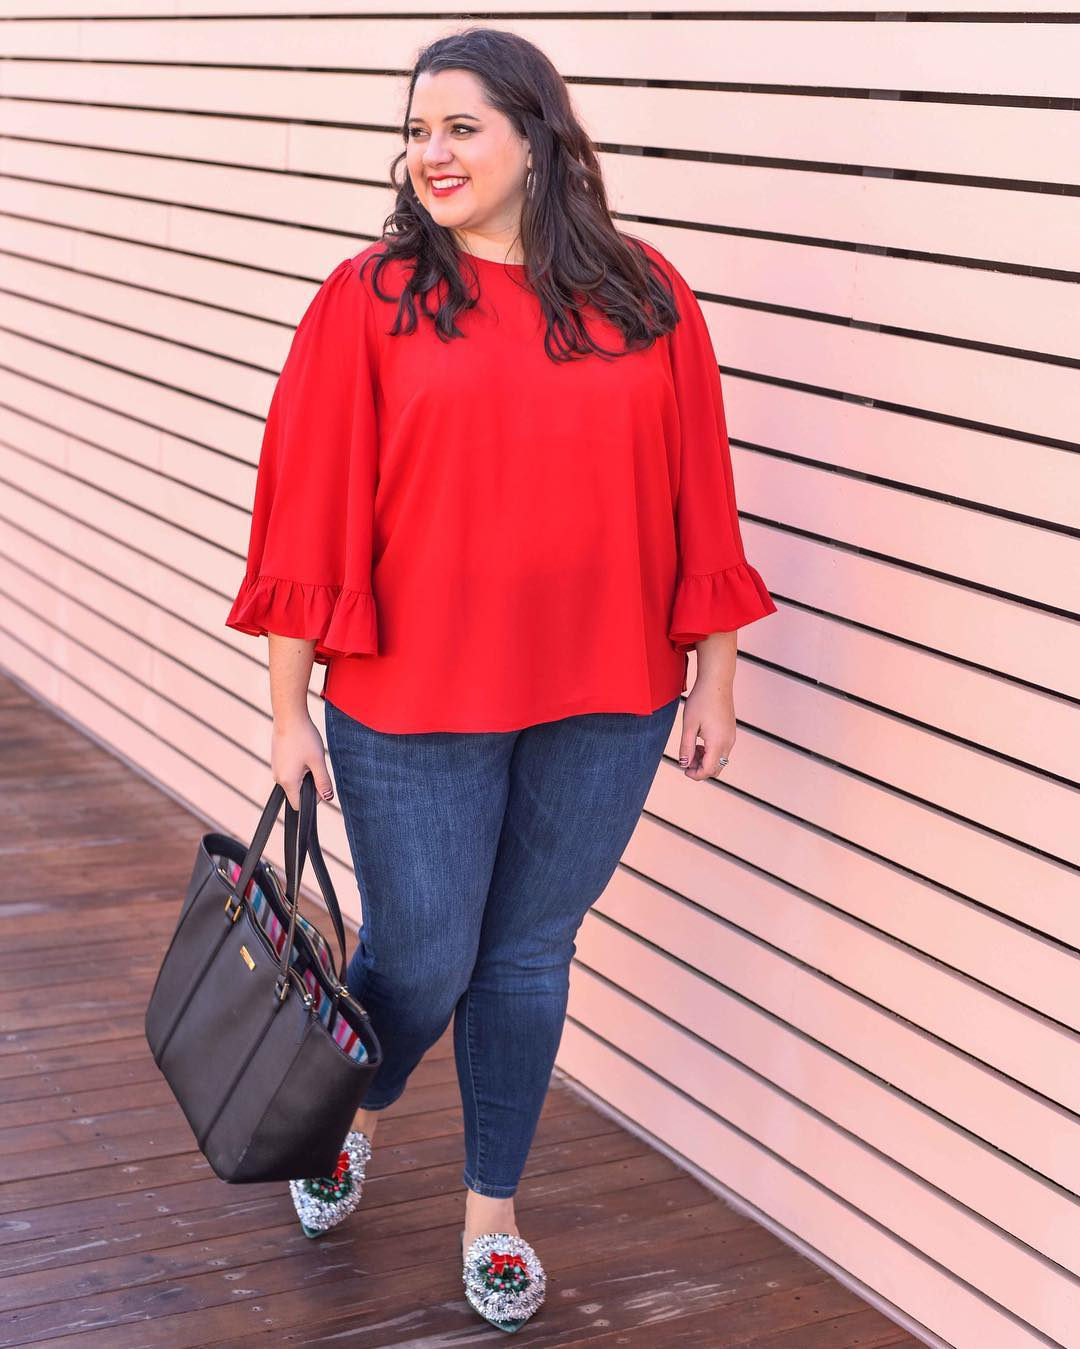 a1269adf71c3 Top 24 Plus-Size Fashion Blogs to Follow in 2018